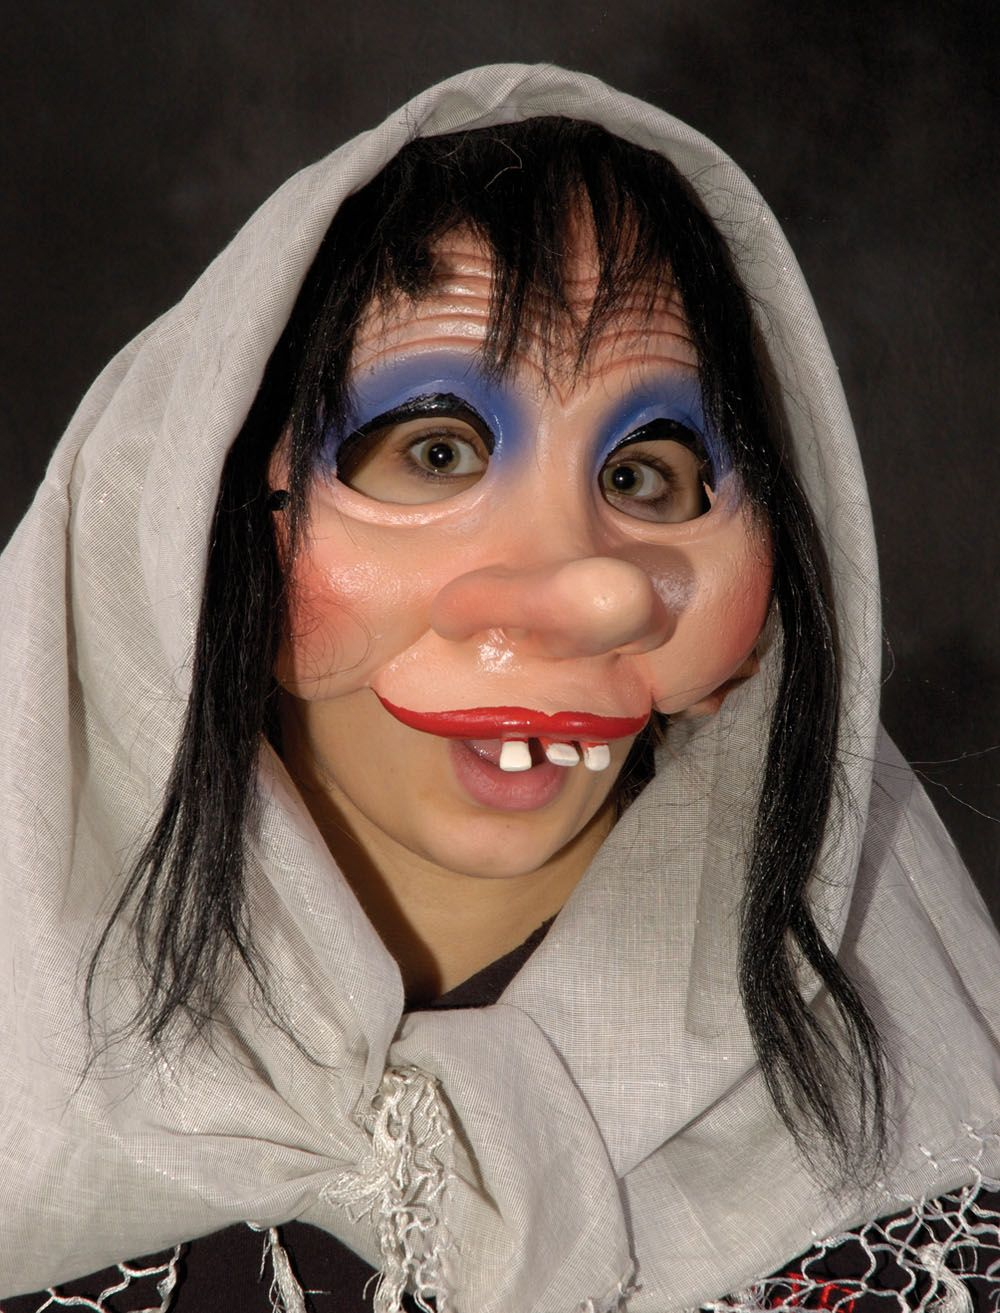 Shy creepy ugly lady Halloween mask | Human Face Halloween Masks ...